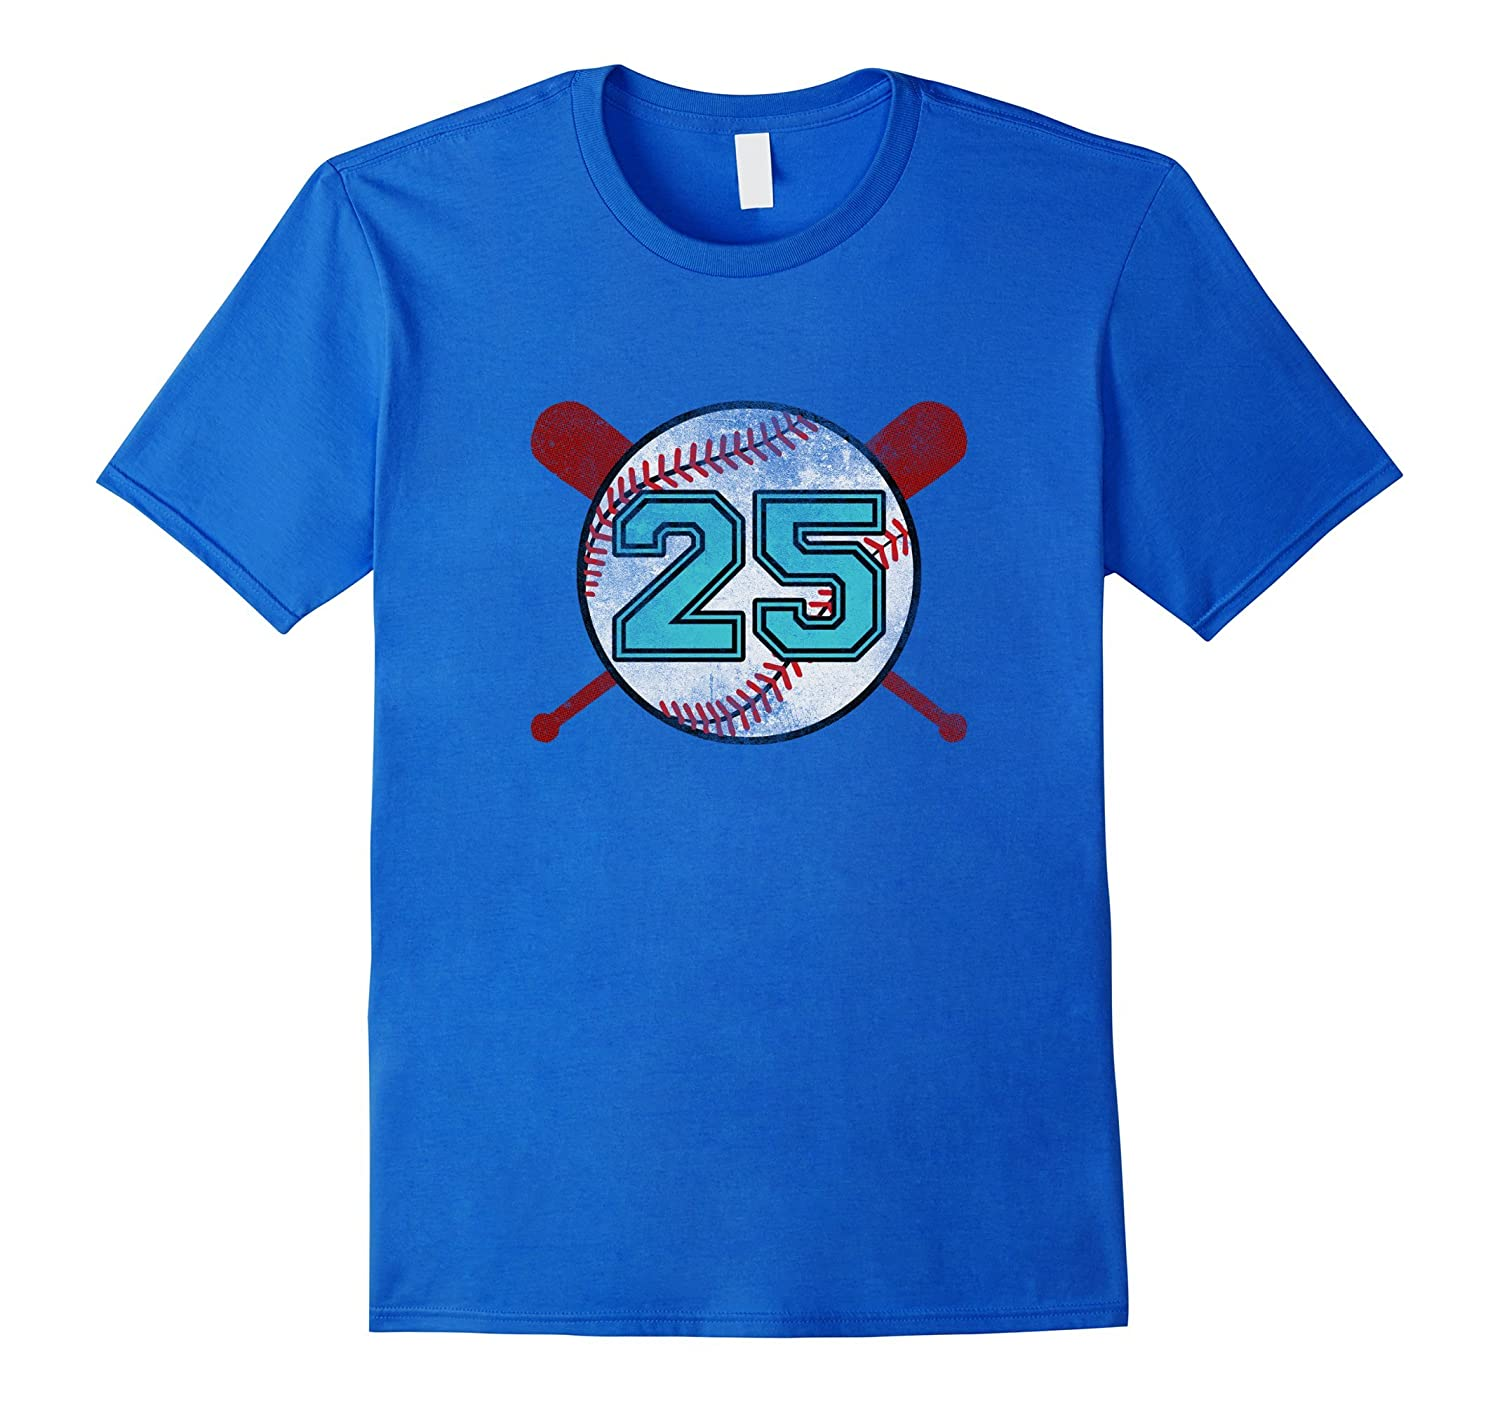 Distressed Baseball Jersey Number T-Shirt #25 Twenty-five-TH